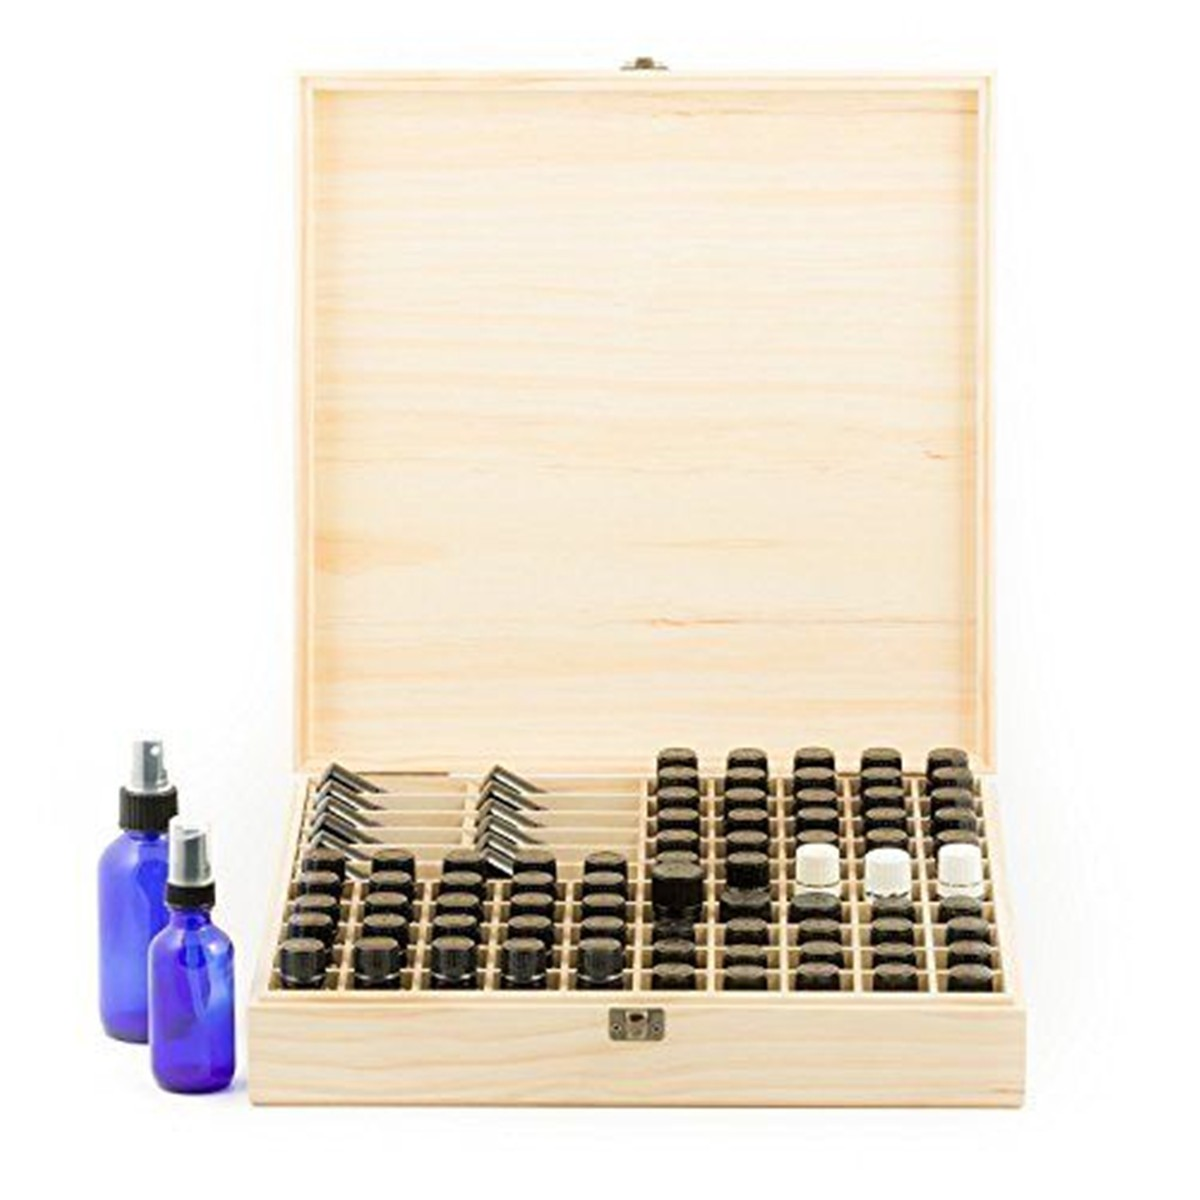 85 Slots Essential Oil Storage Box Wooden Case Aromatherapy Organizer Storage Display Container